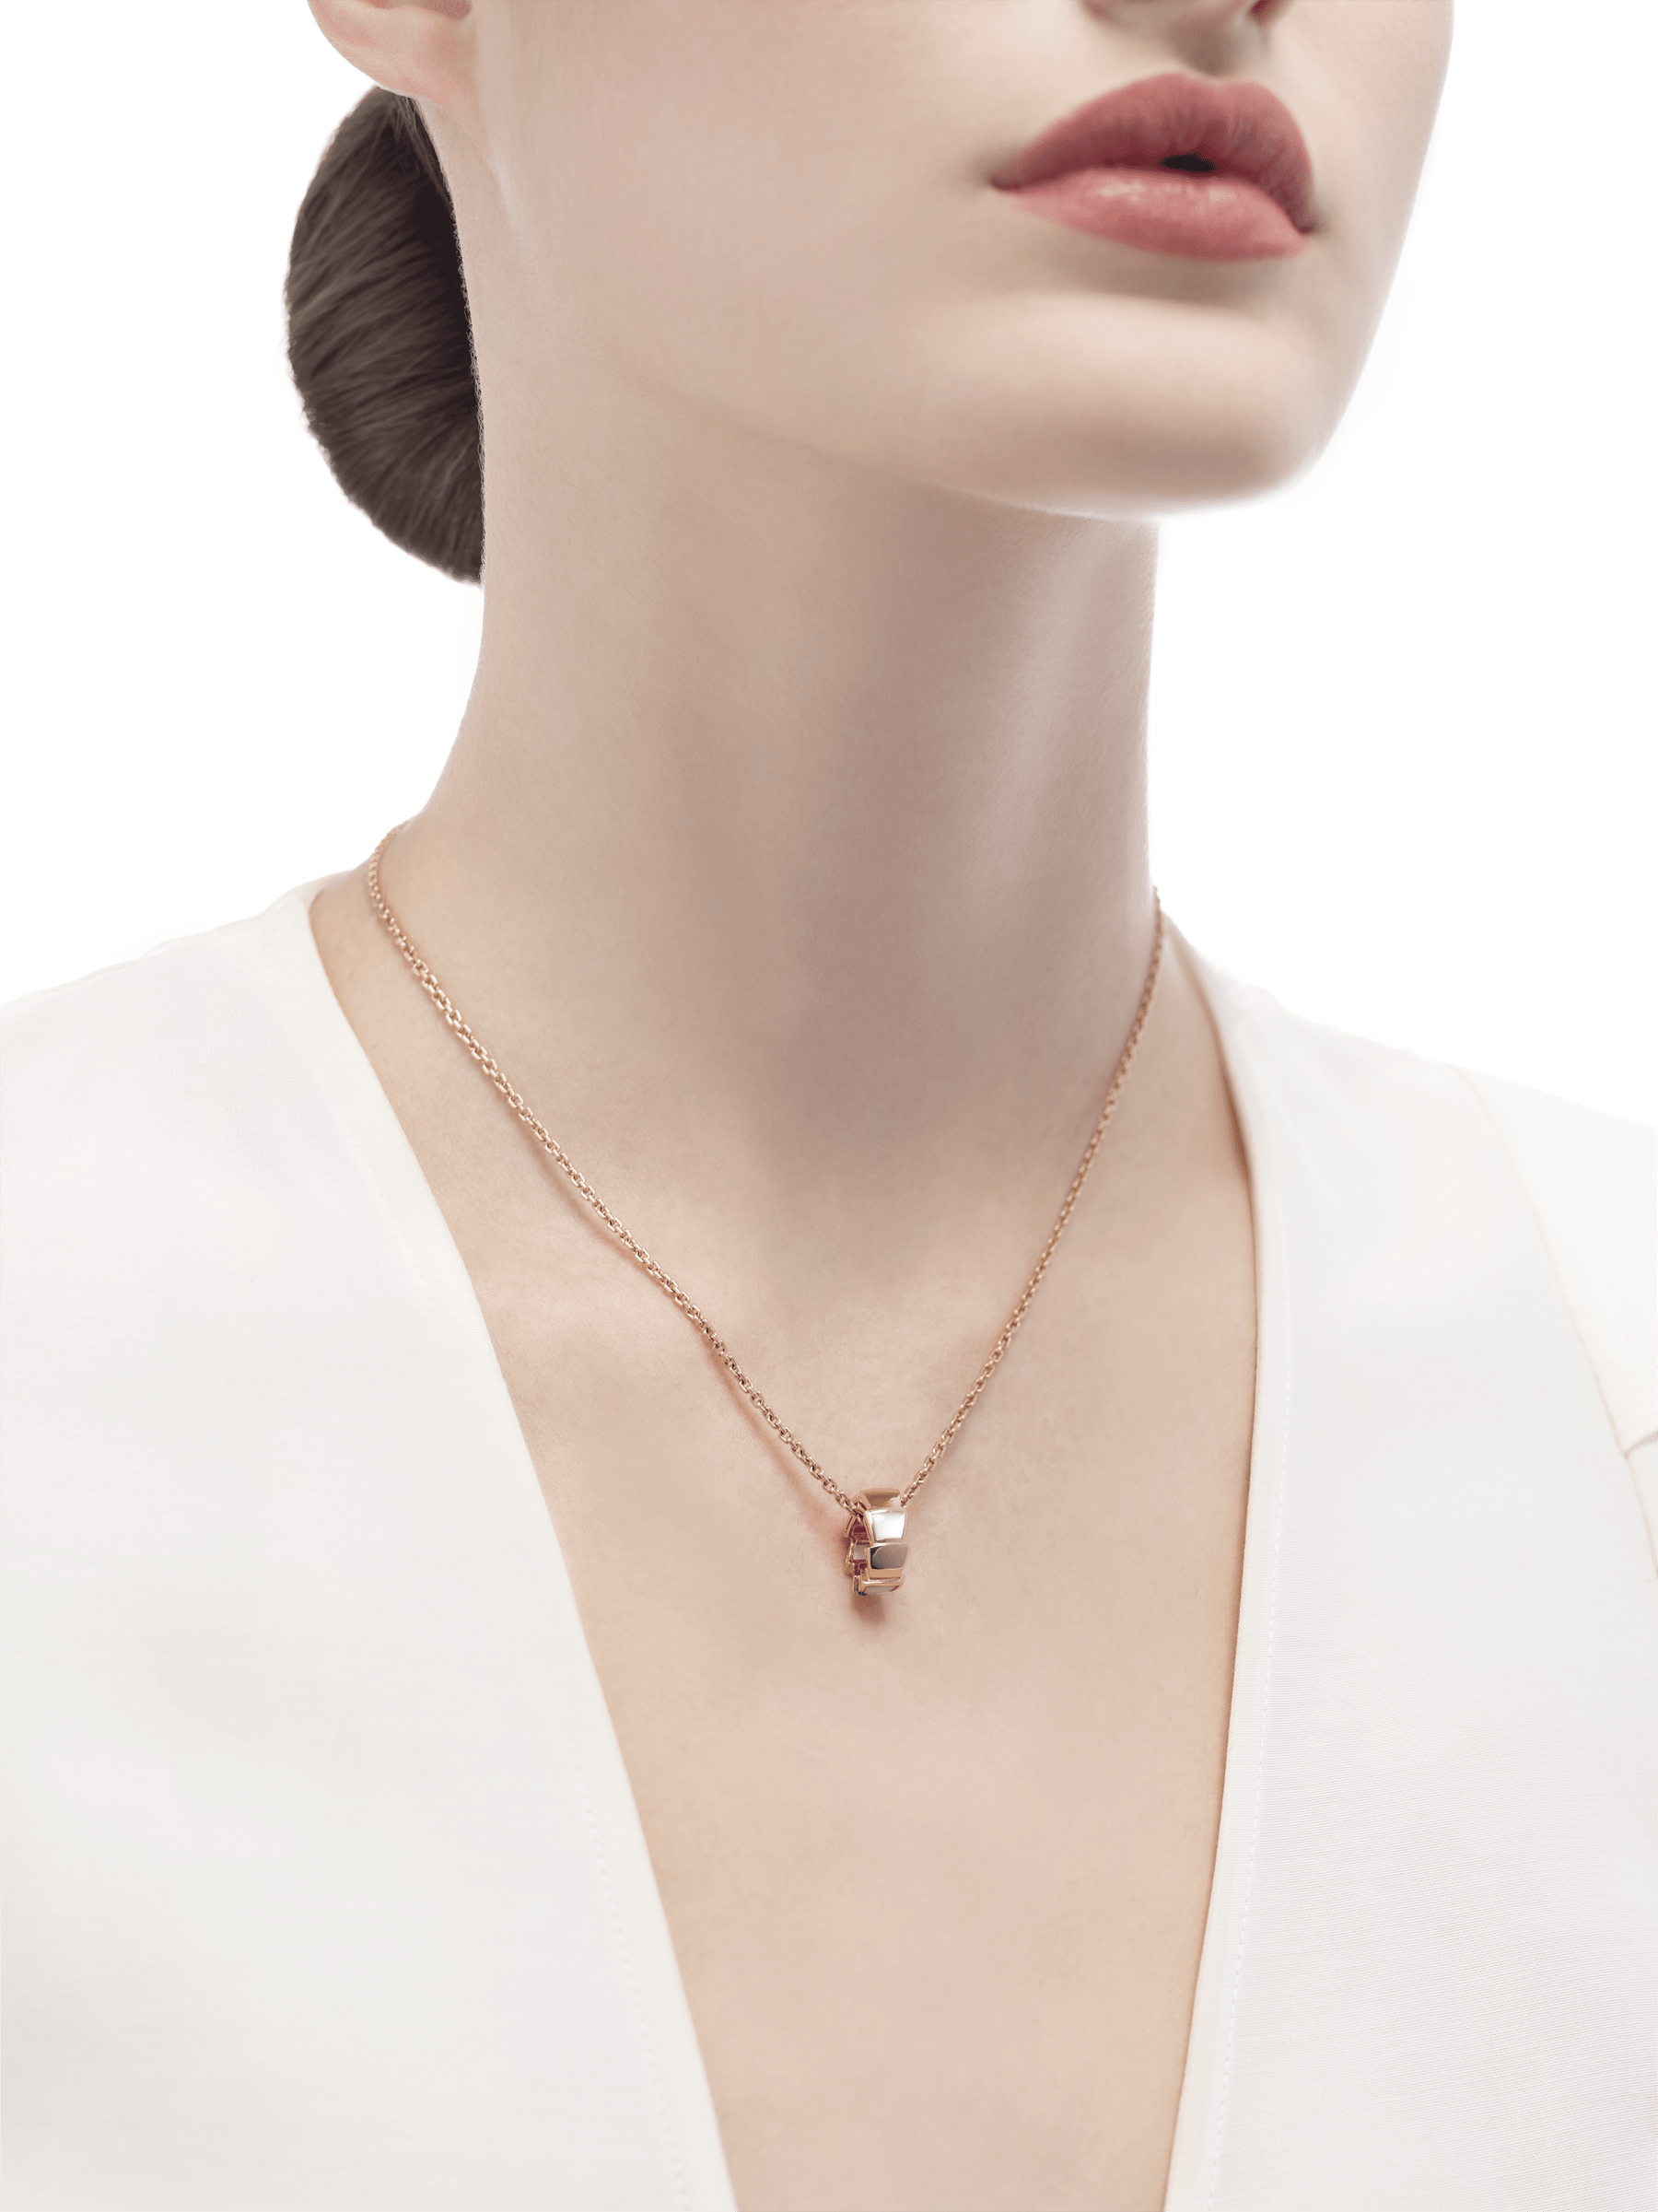 Serpenti Viper 18 kt rose gold necklace with pendant set with mother-of-pearl elements 355795 image 4